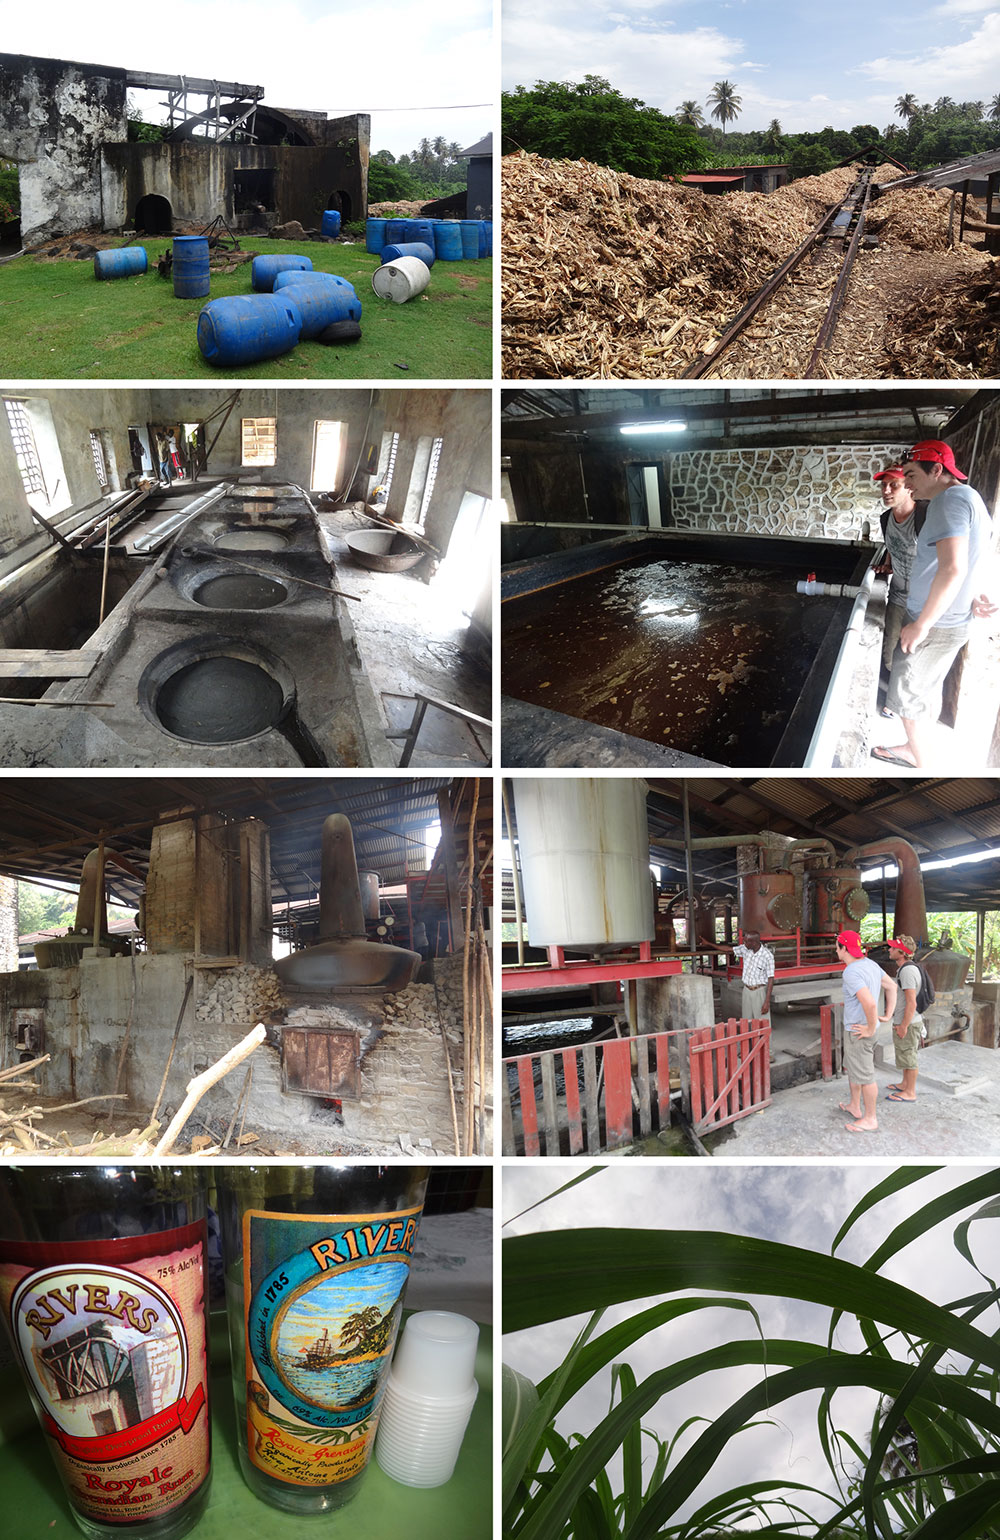 Rivers Rum distillery